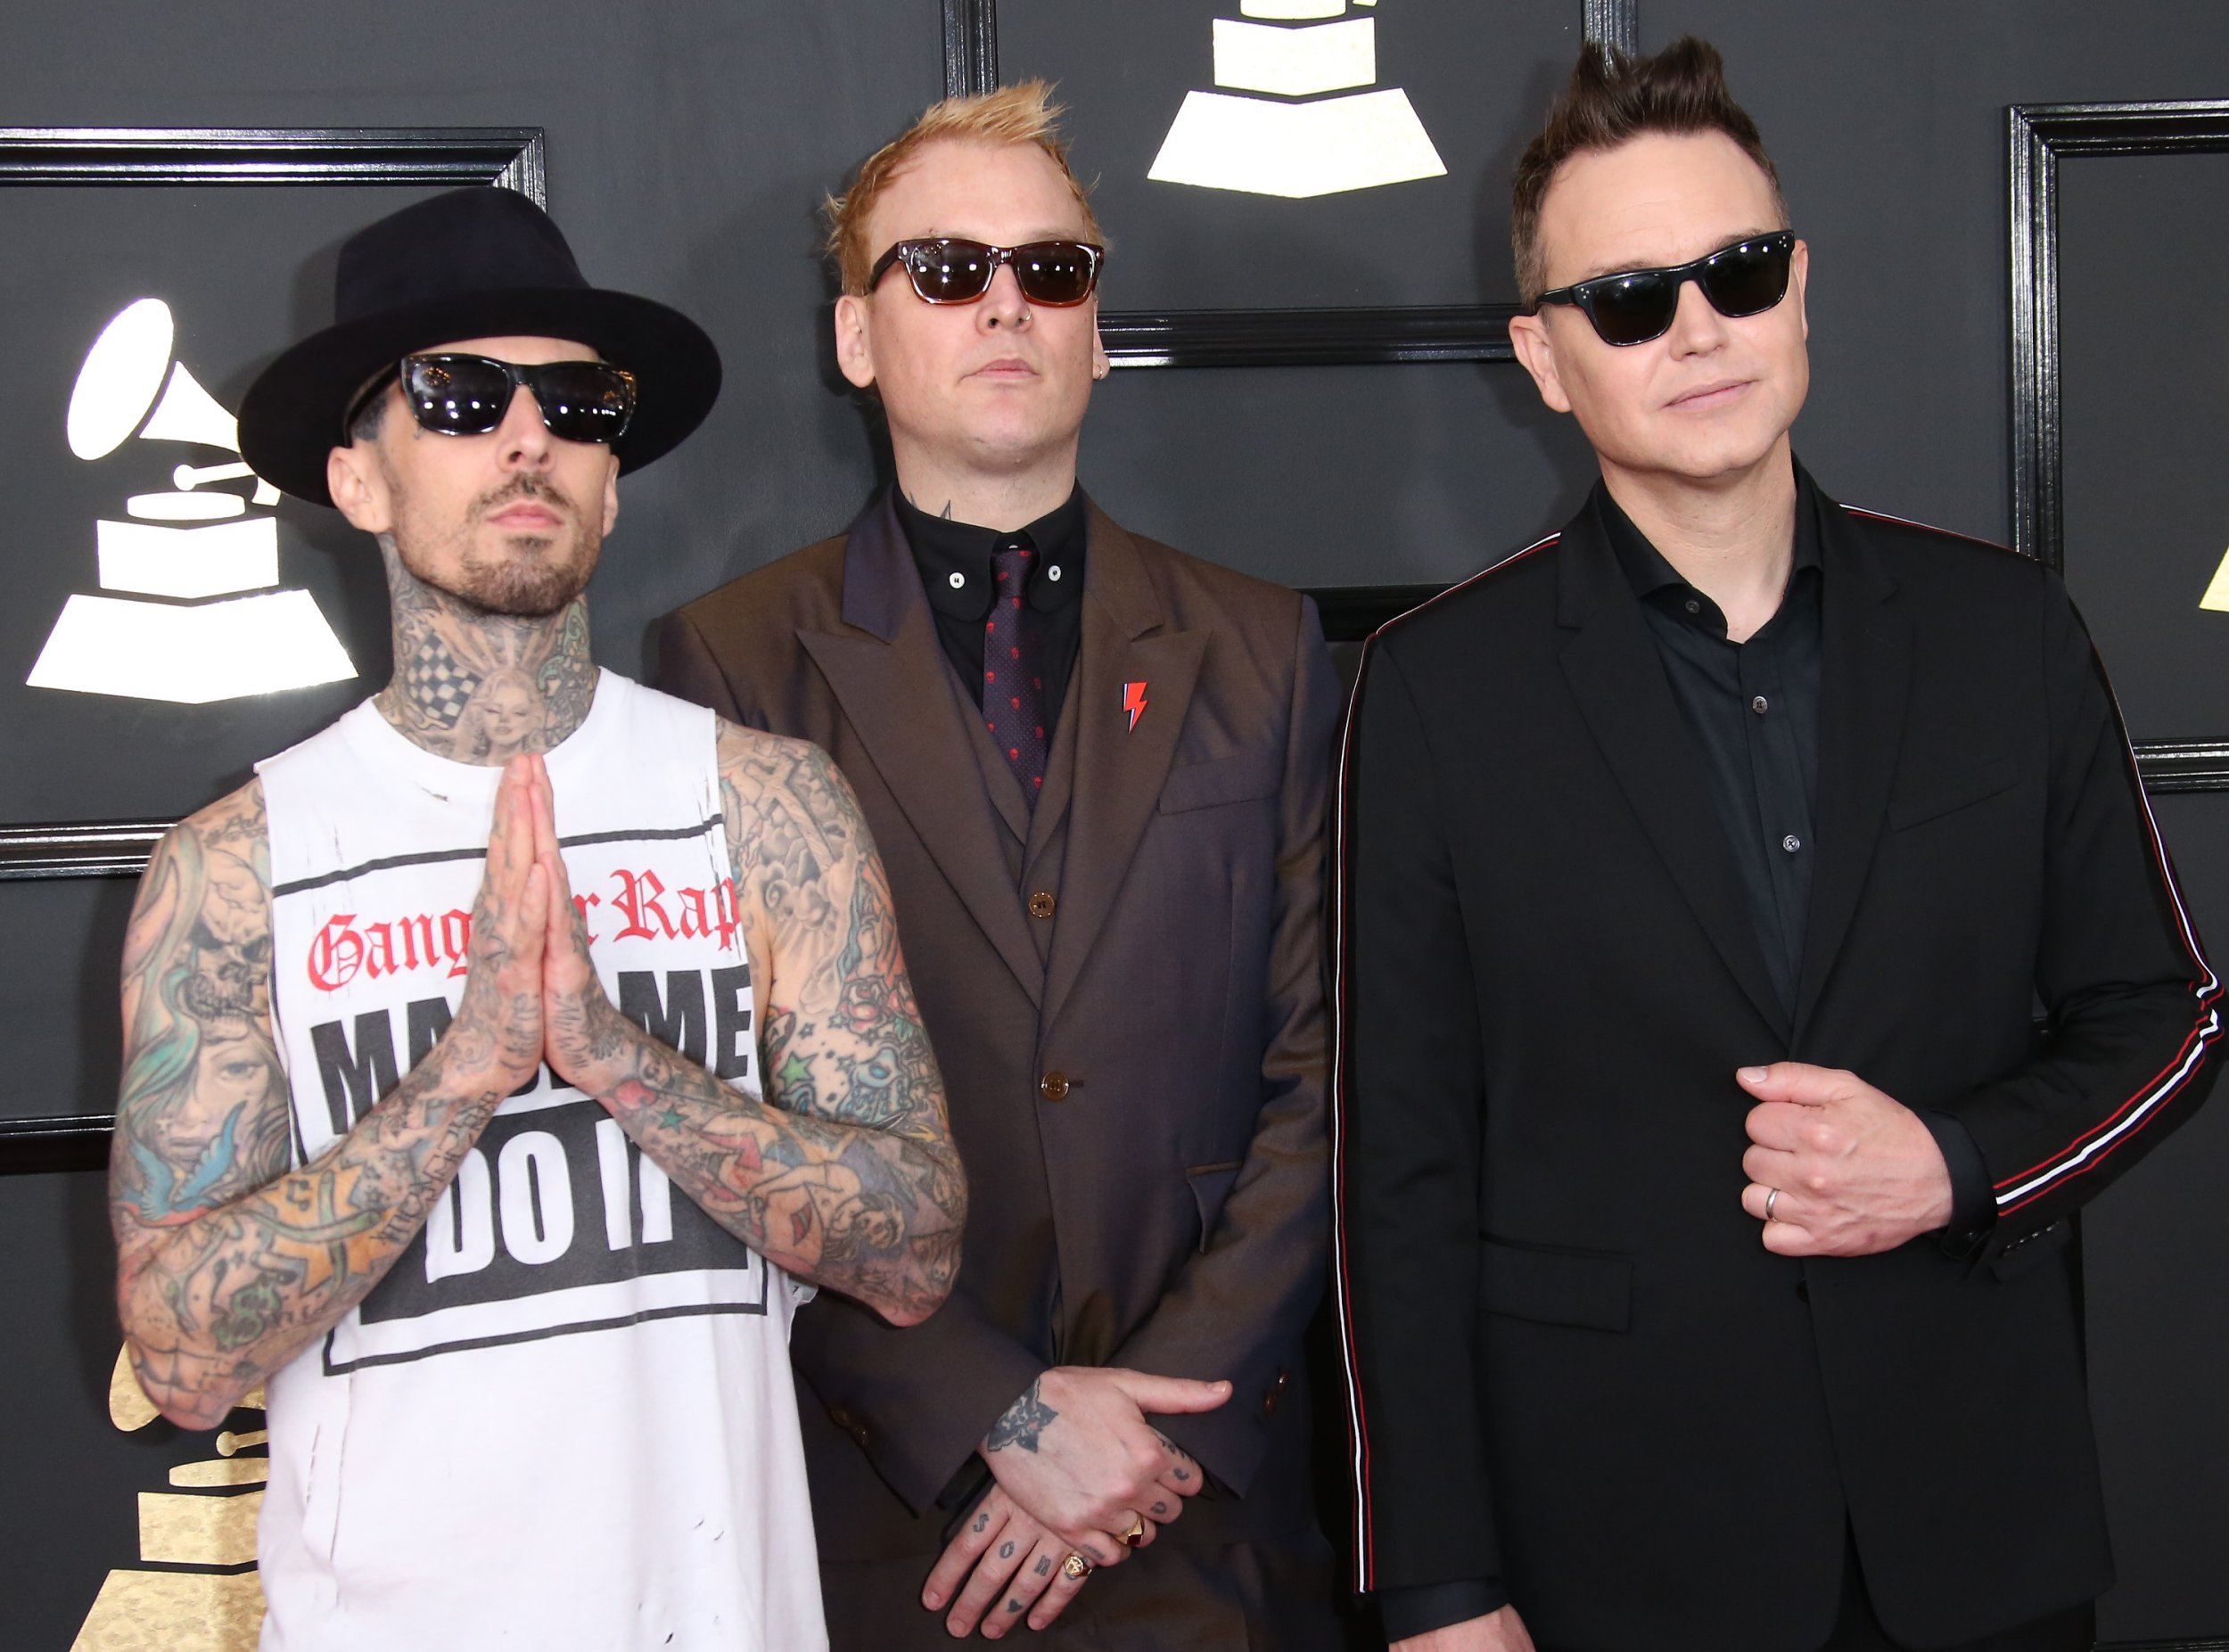 Blink-182 cancel residency due to Travis Barker having blood clots: 'It kills me that I can't perform'